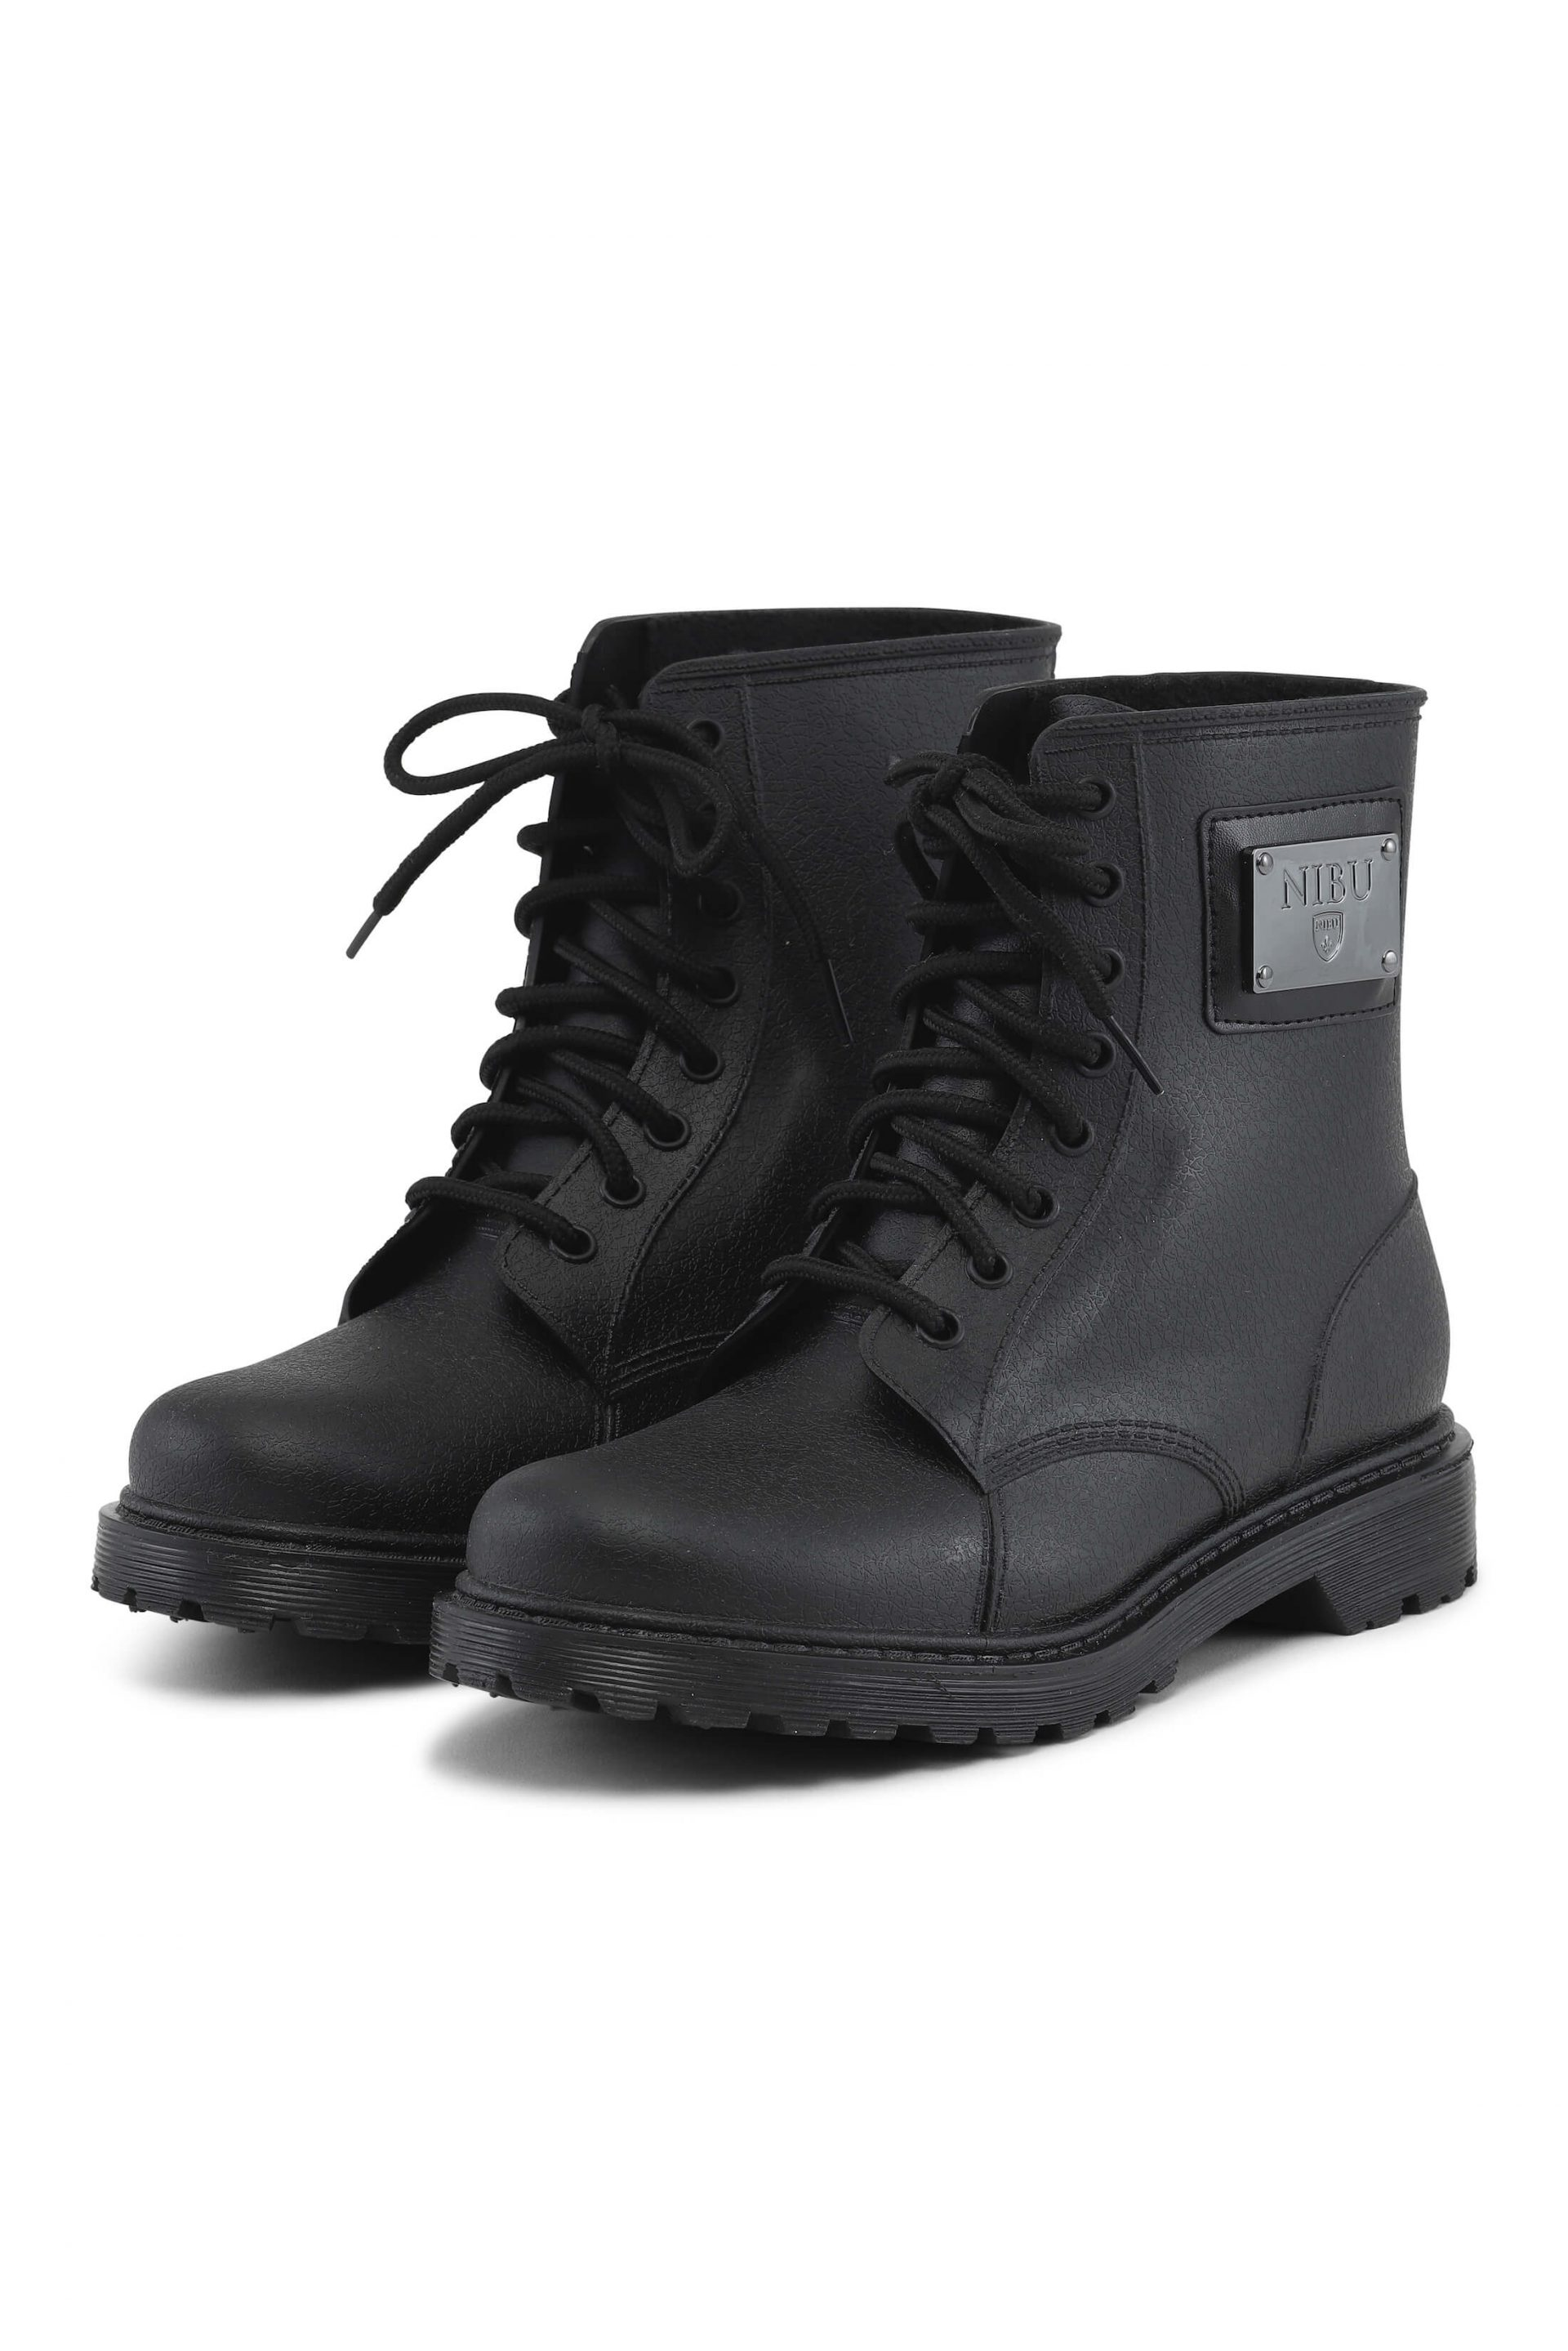 Rainboots with an extra soft insole